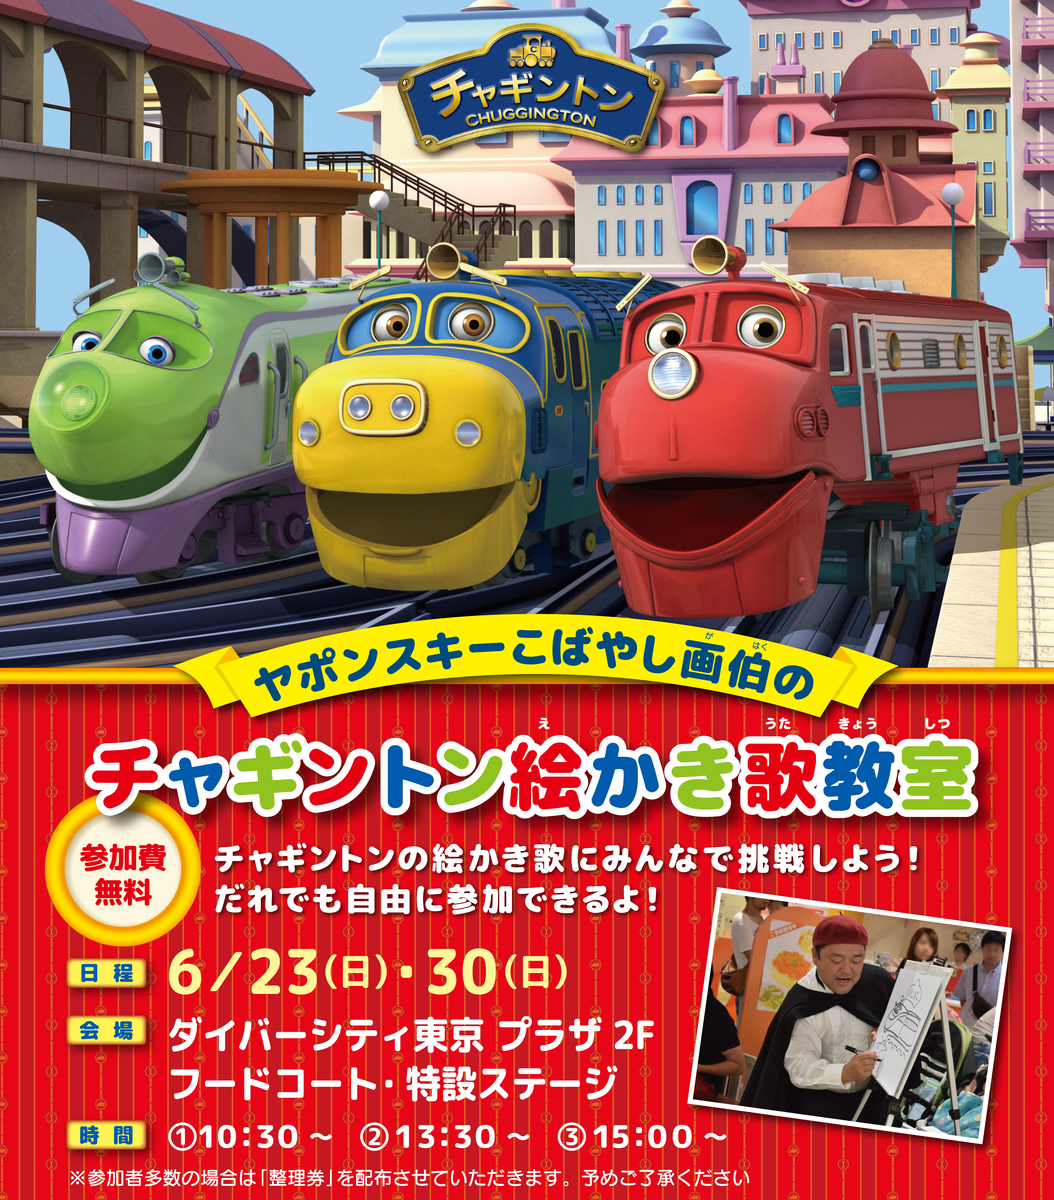 f:id:chuggington-blog:20190621134143j:plain